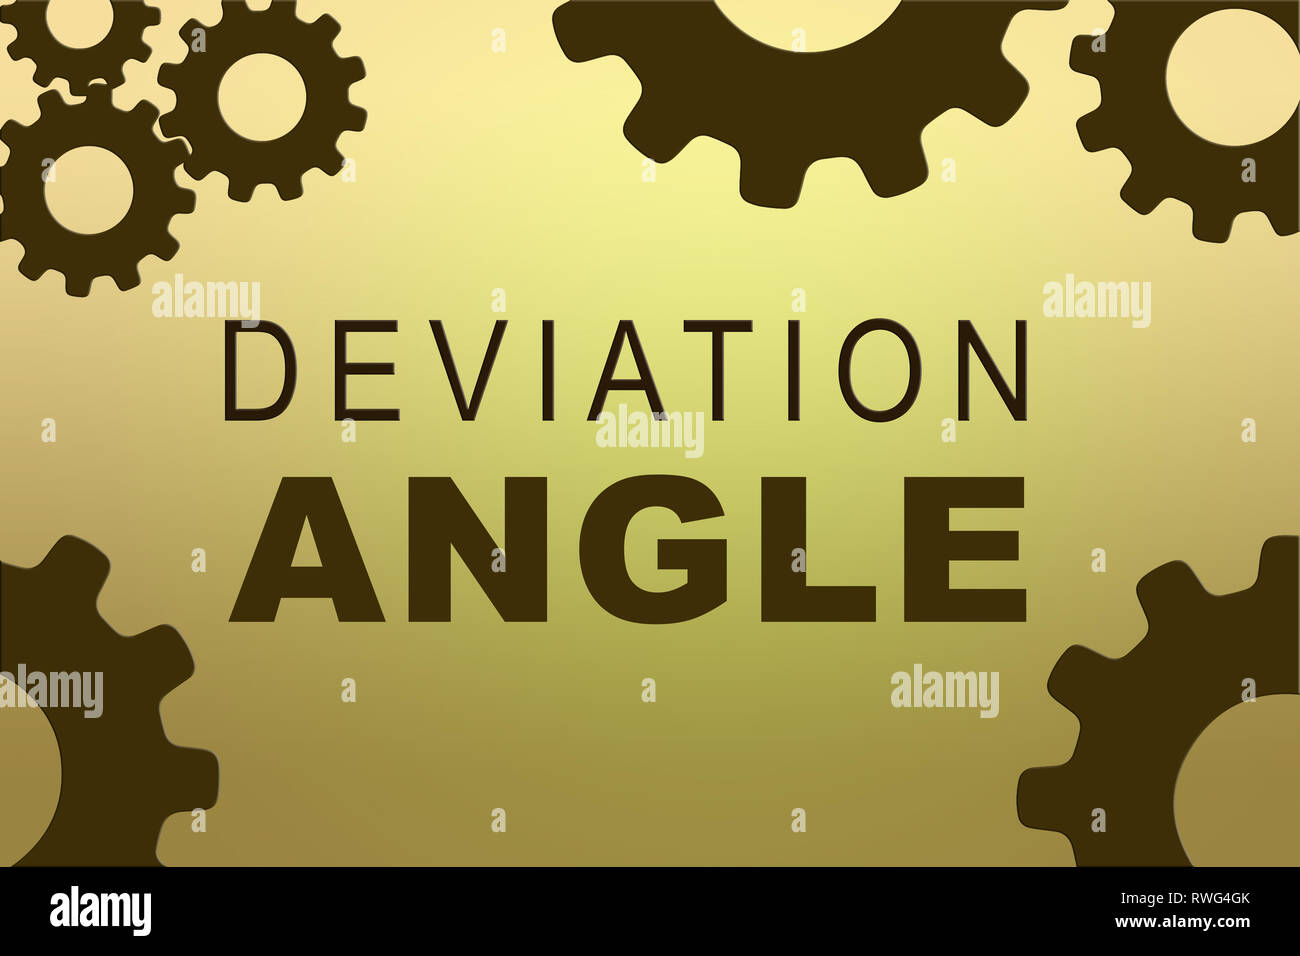 DEVIATION ANGLE sign concept illustration with green gear wheel figures on yellow background - Stock Image